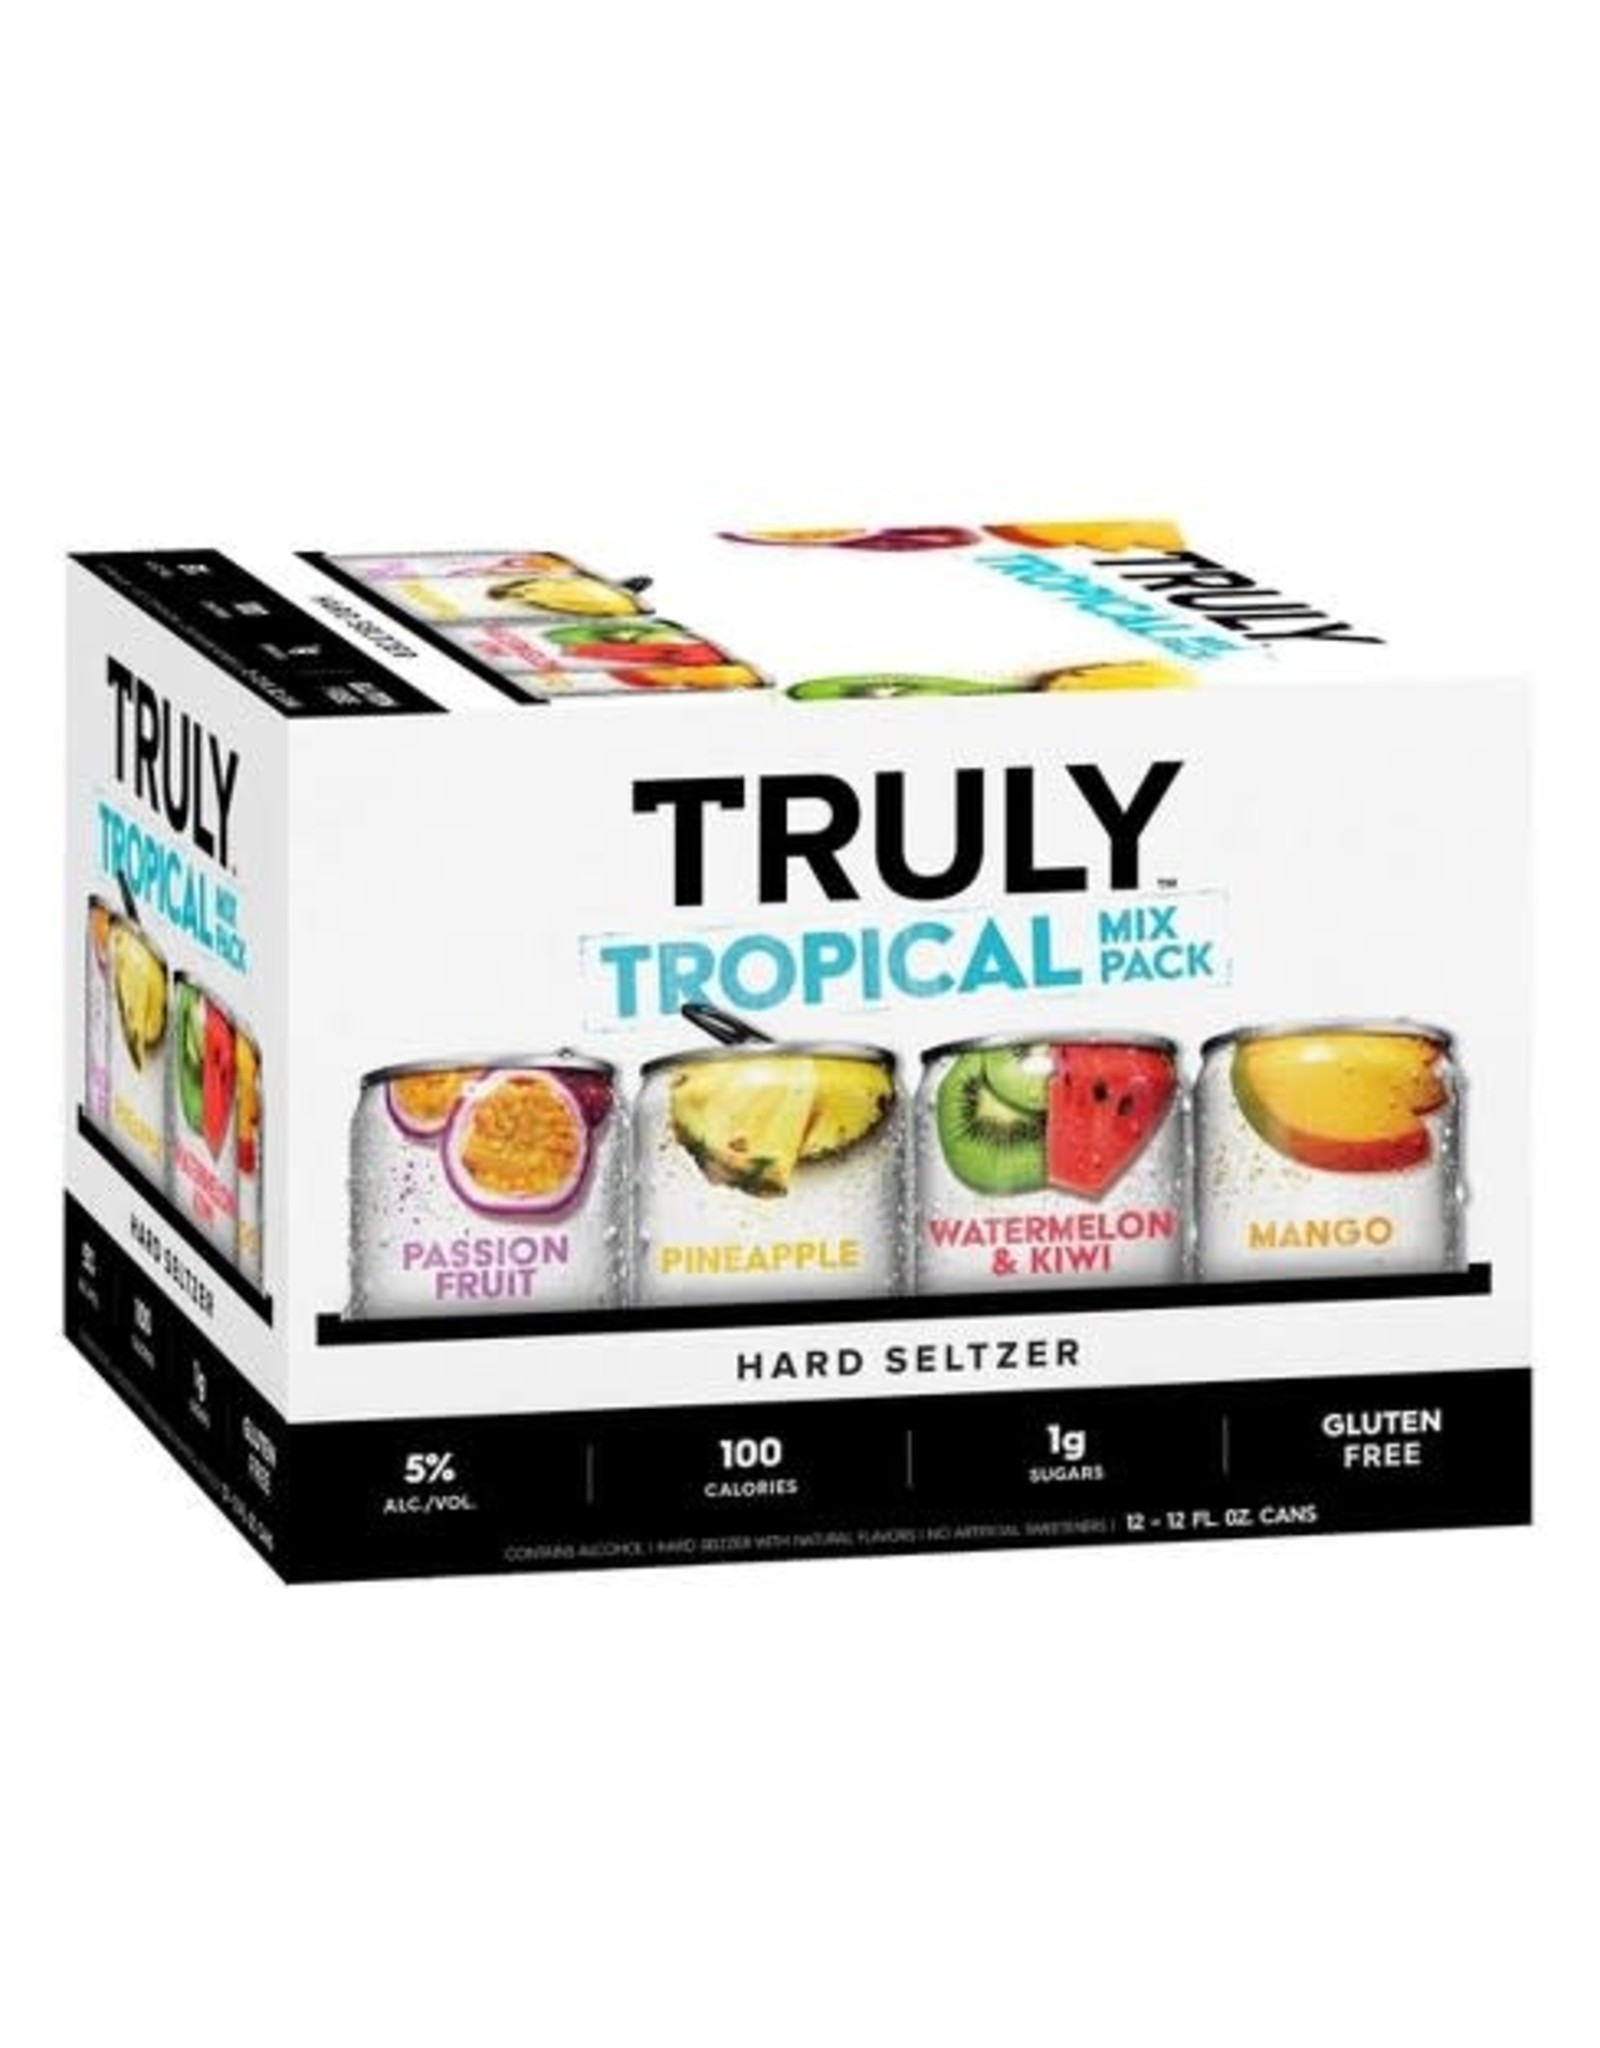 TRULY SPIKED TROPICAL 2-12-12CN